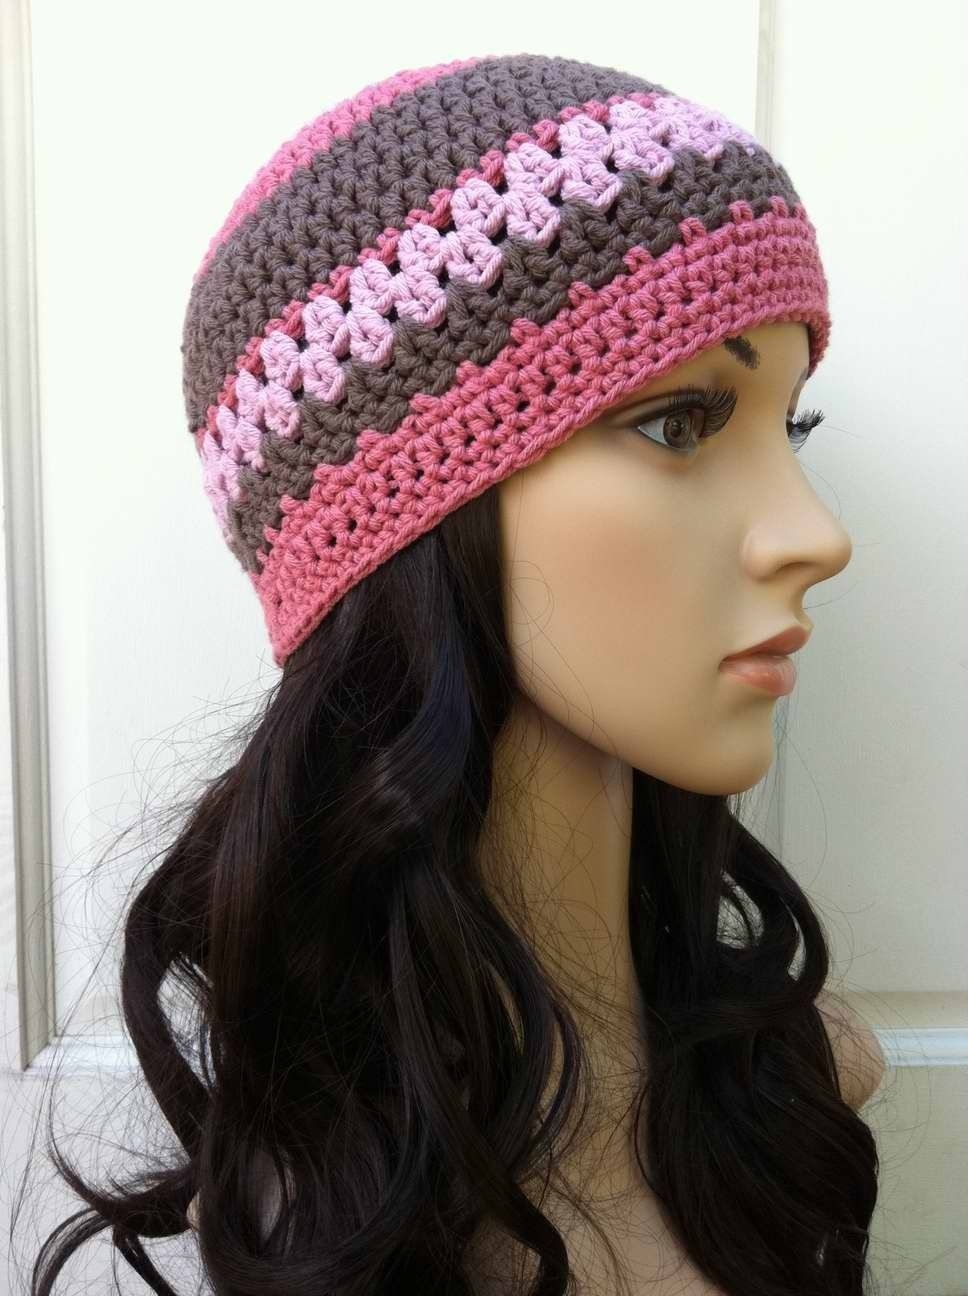 Crochet Hat Pattern - Multi Coloured Ladies Hat Crochet Pattern No.208  Emailed2U One Size.  4.00 f0f95a5b5d7